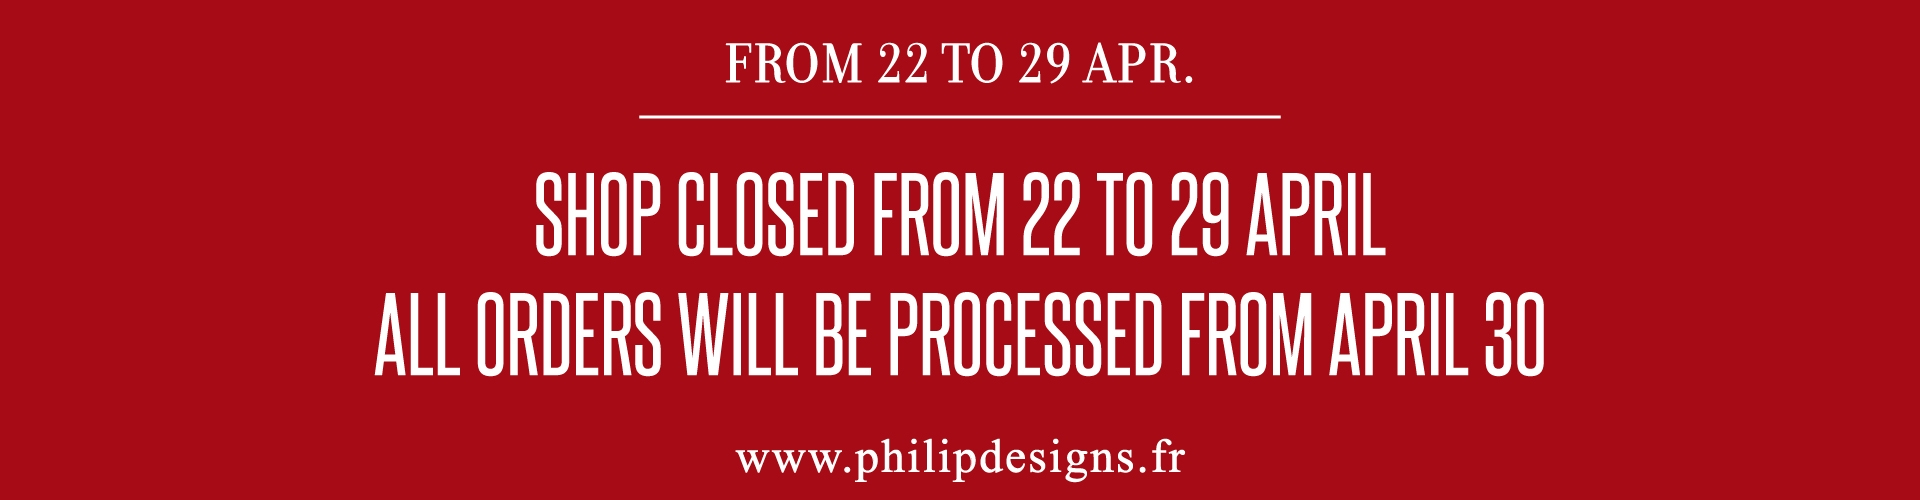 Shop closed from 22 to 29 April, all orders will be processed from April 30